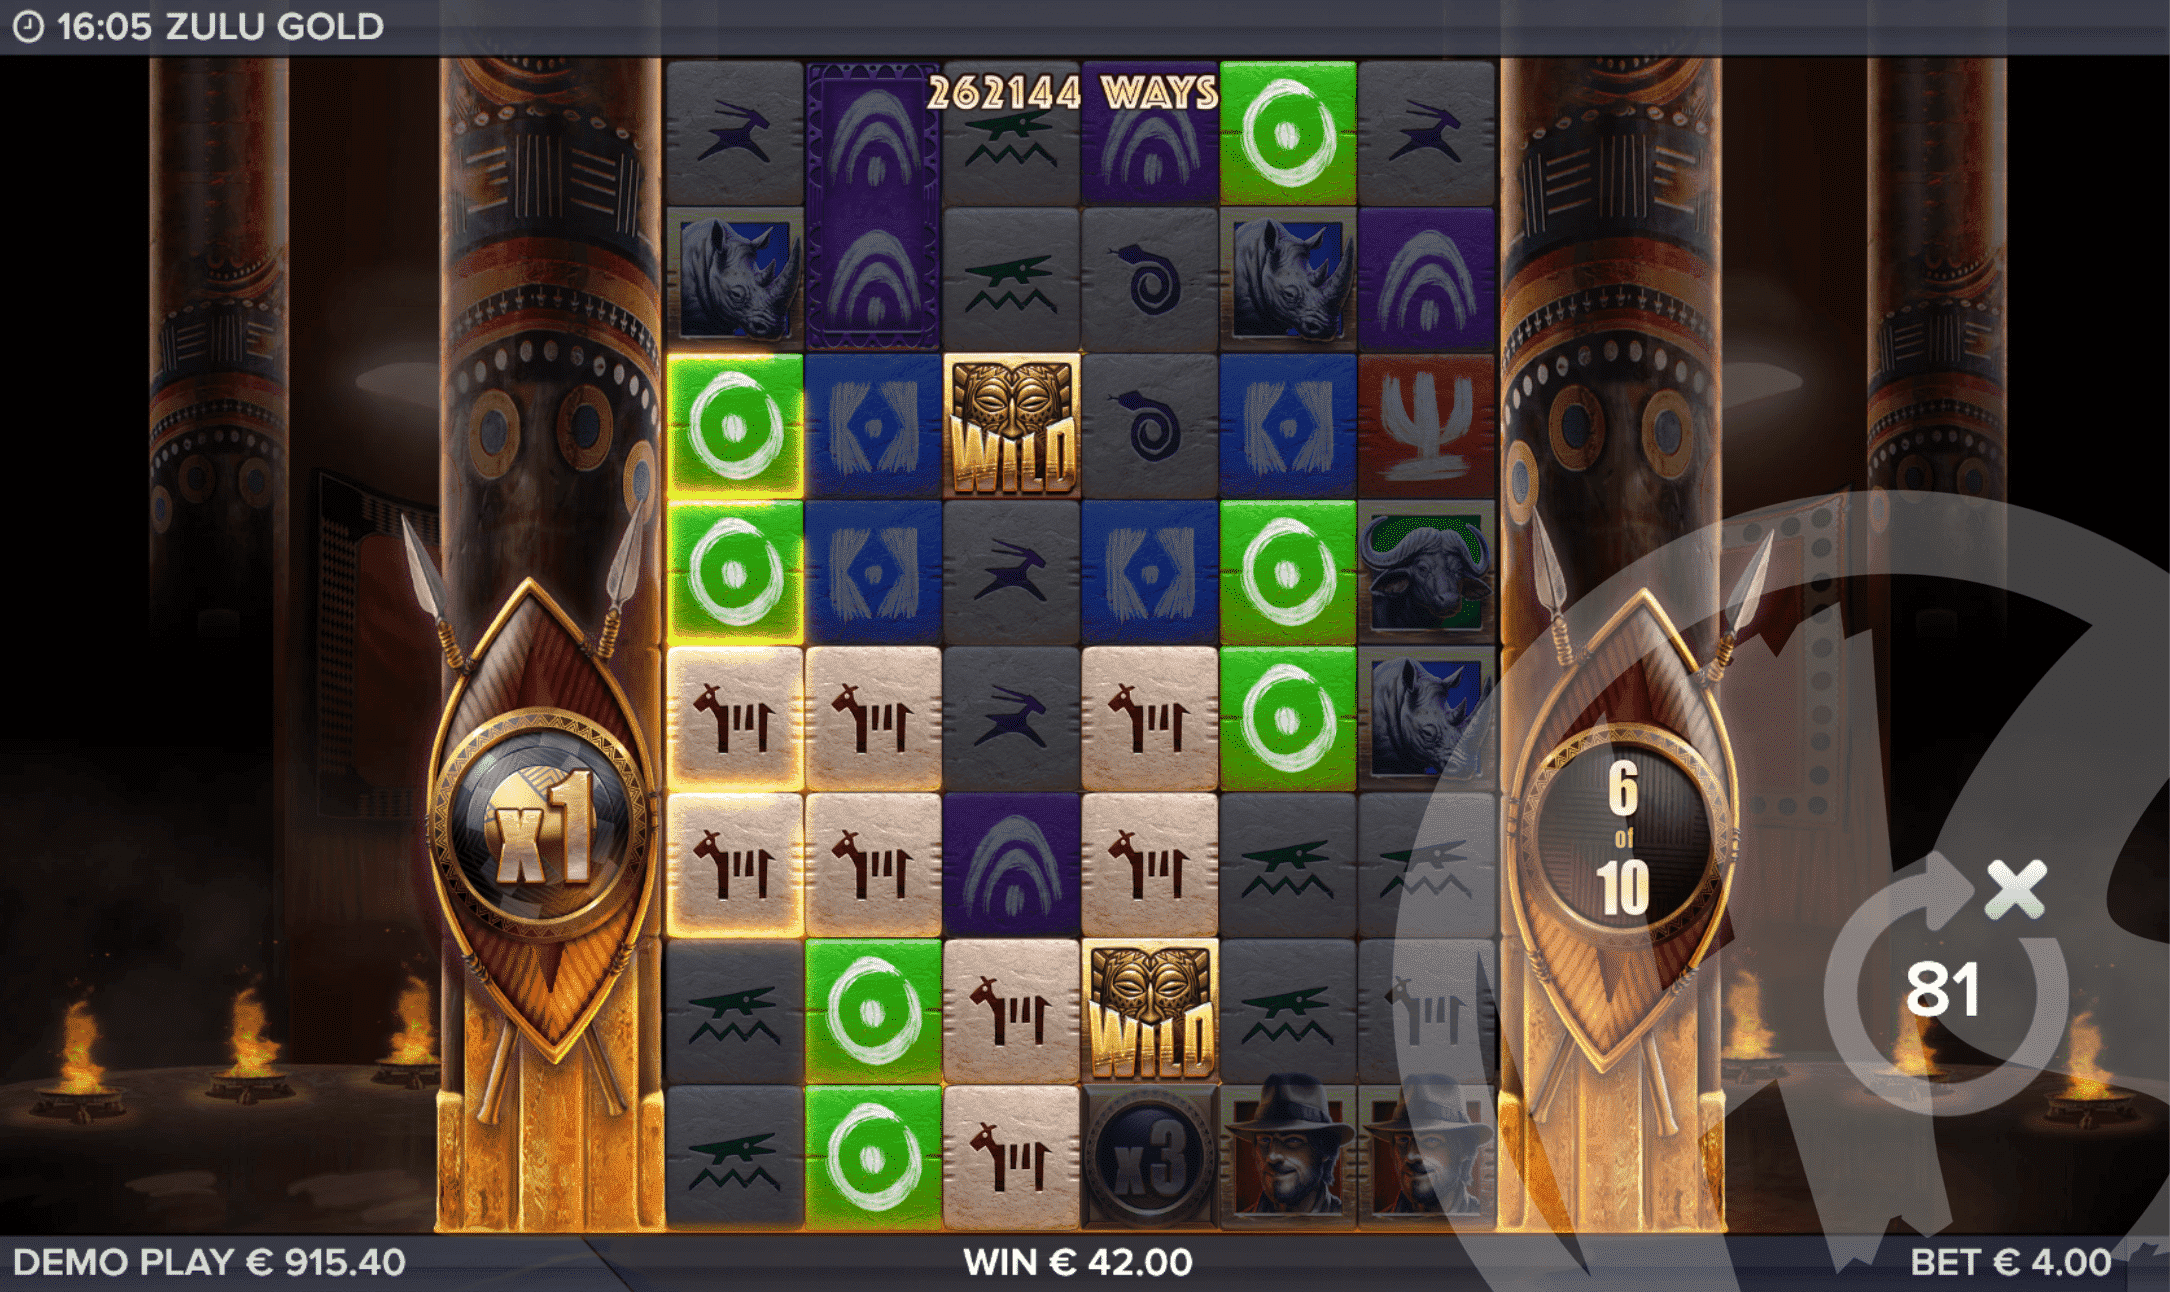 Ways to Win Increase as High as 262,144